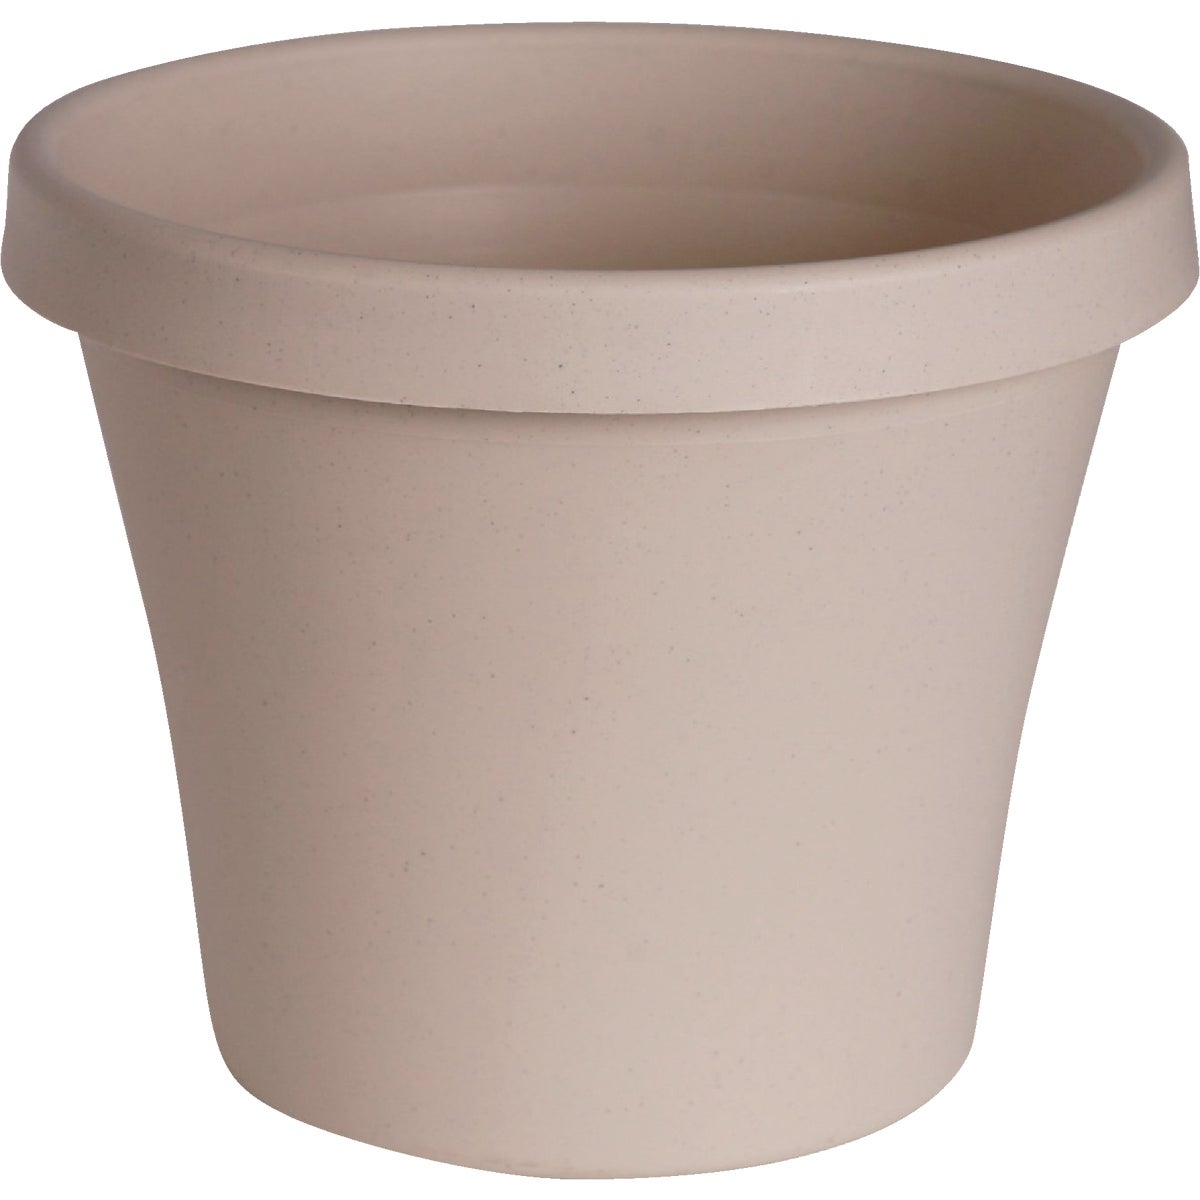 "8"" PEPRSTONE POLY POT - 50608 by Fiskars Brands Inc"